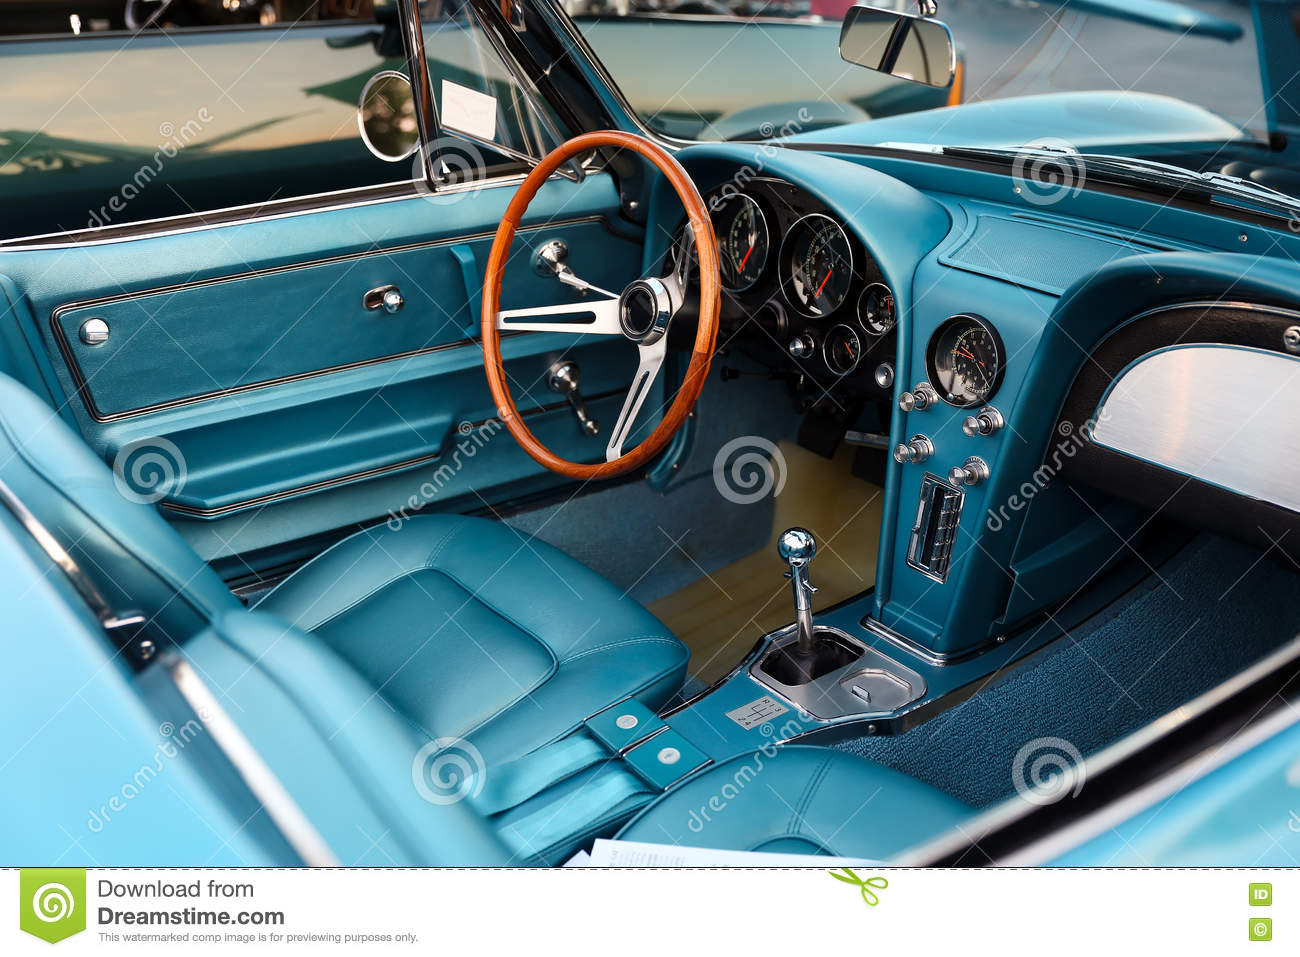 classic retro vintage blue car stock photo 88791360. Black Bedroom Furniture Sets. Home Design Ideas